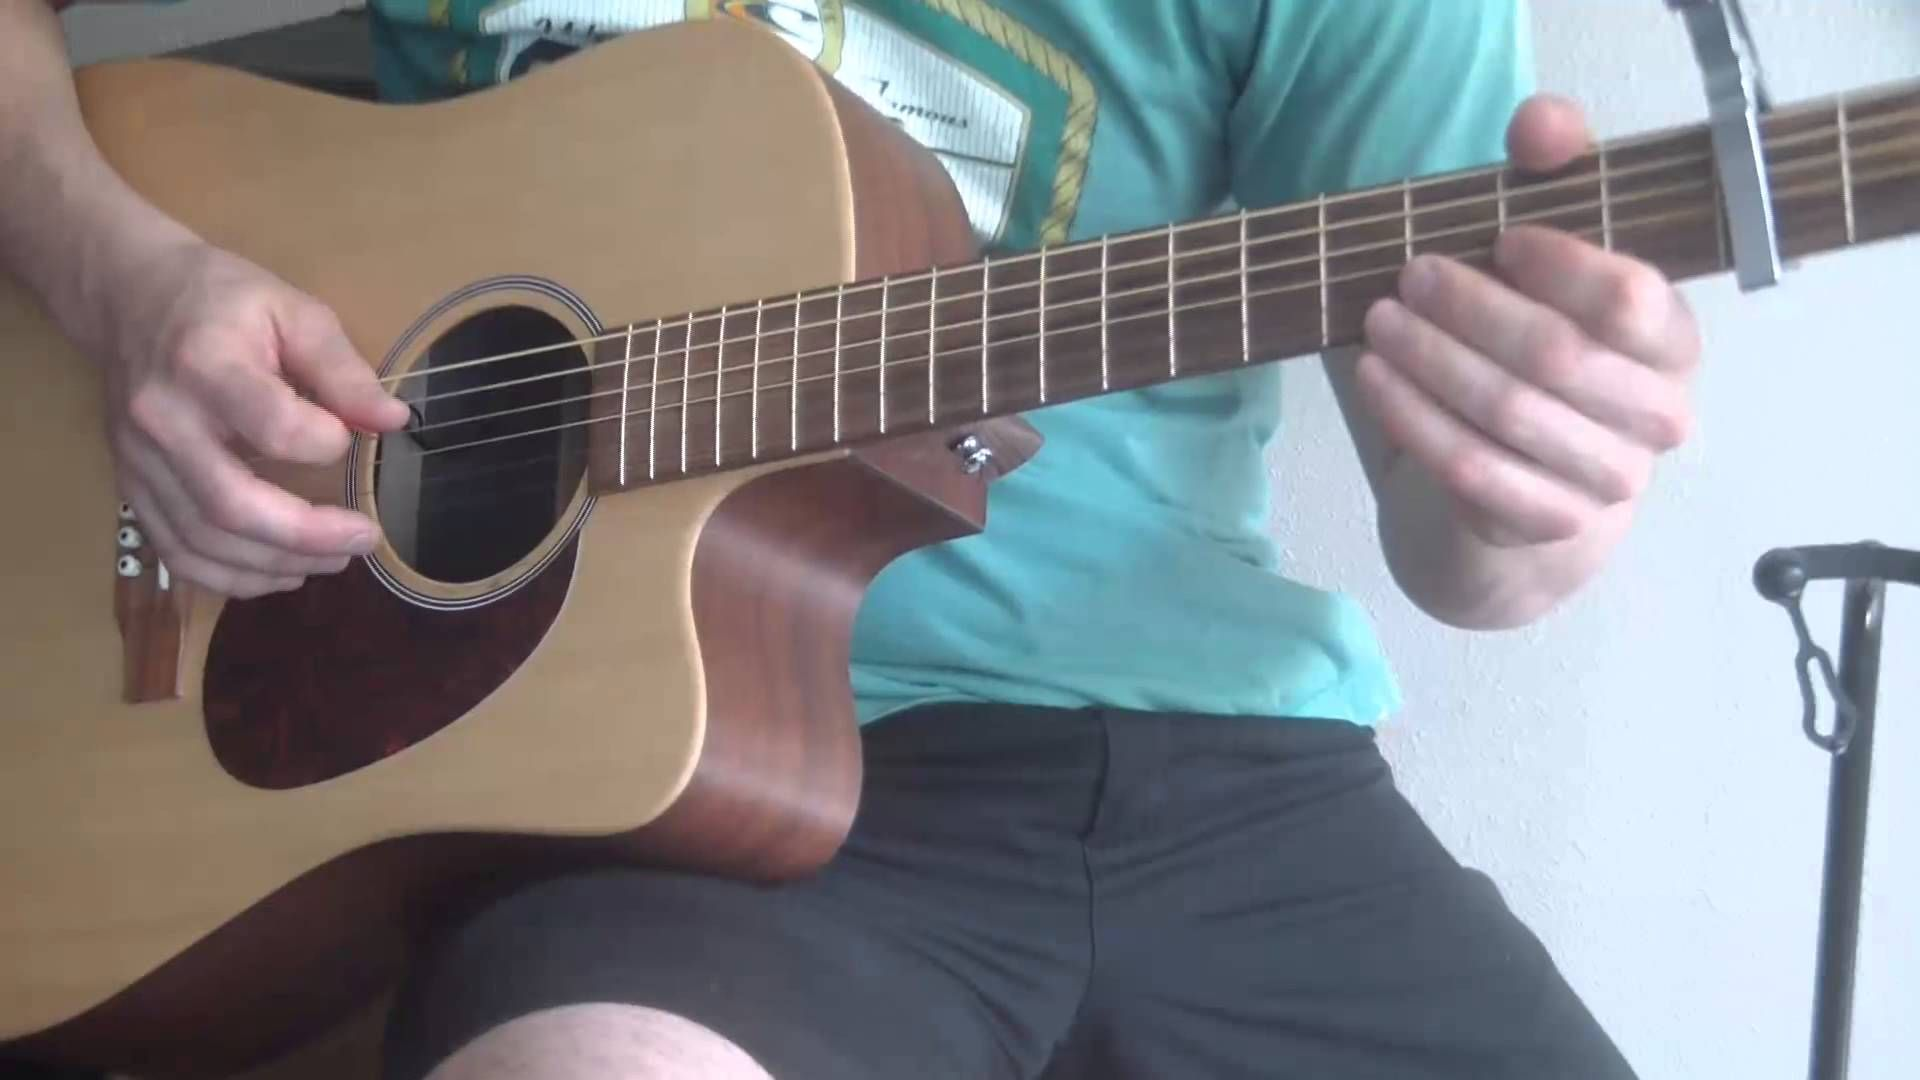 Mumford And Sons The Cave Chords Strumming Pattern Guitar Tutorial